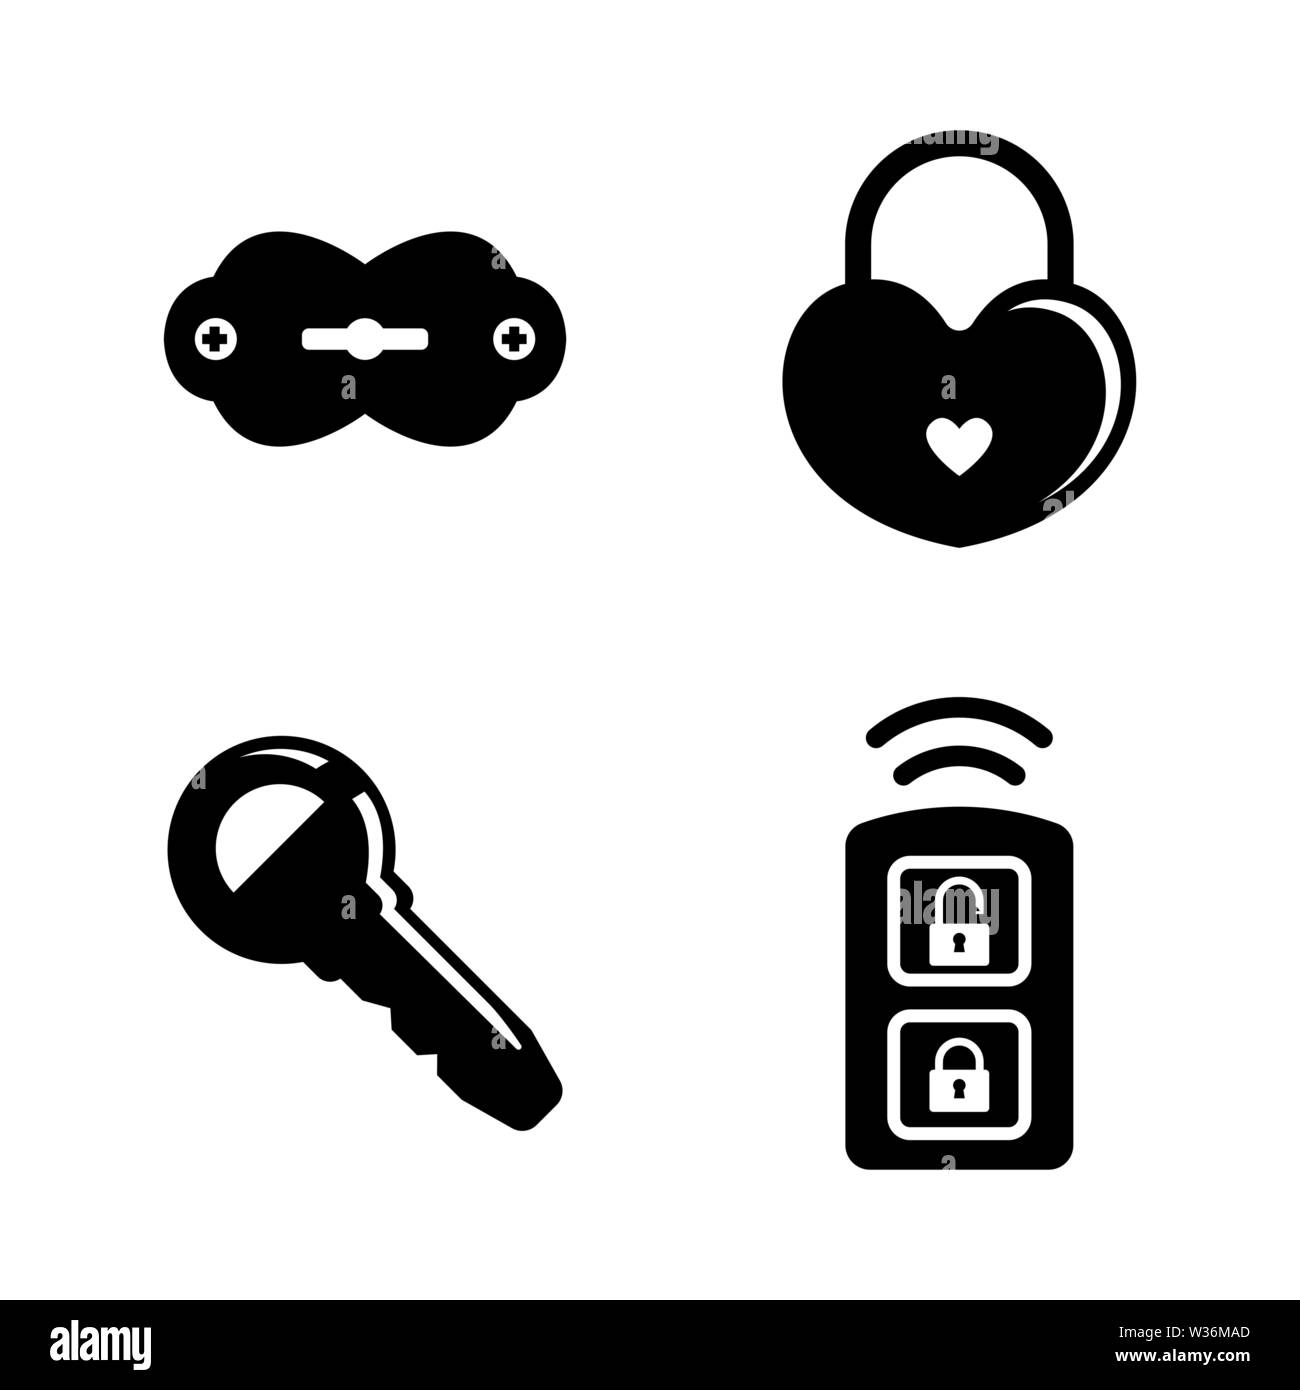 Security Keys, Lock. Simple Related Vector Icons Set for Video, Mobile Apps, Web Sites, Print Projects and Your Design. Security Keys, Lock icon Black - Stock Image